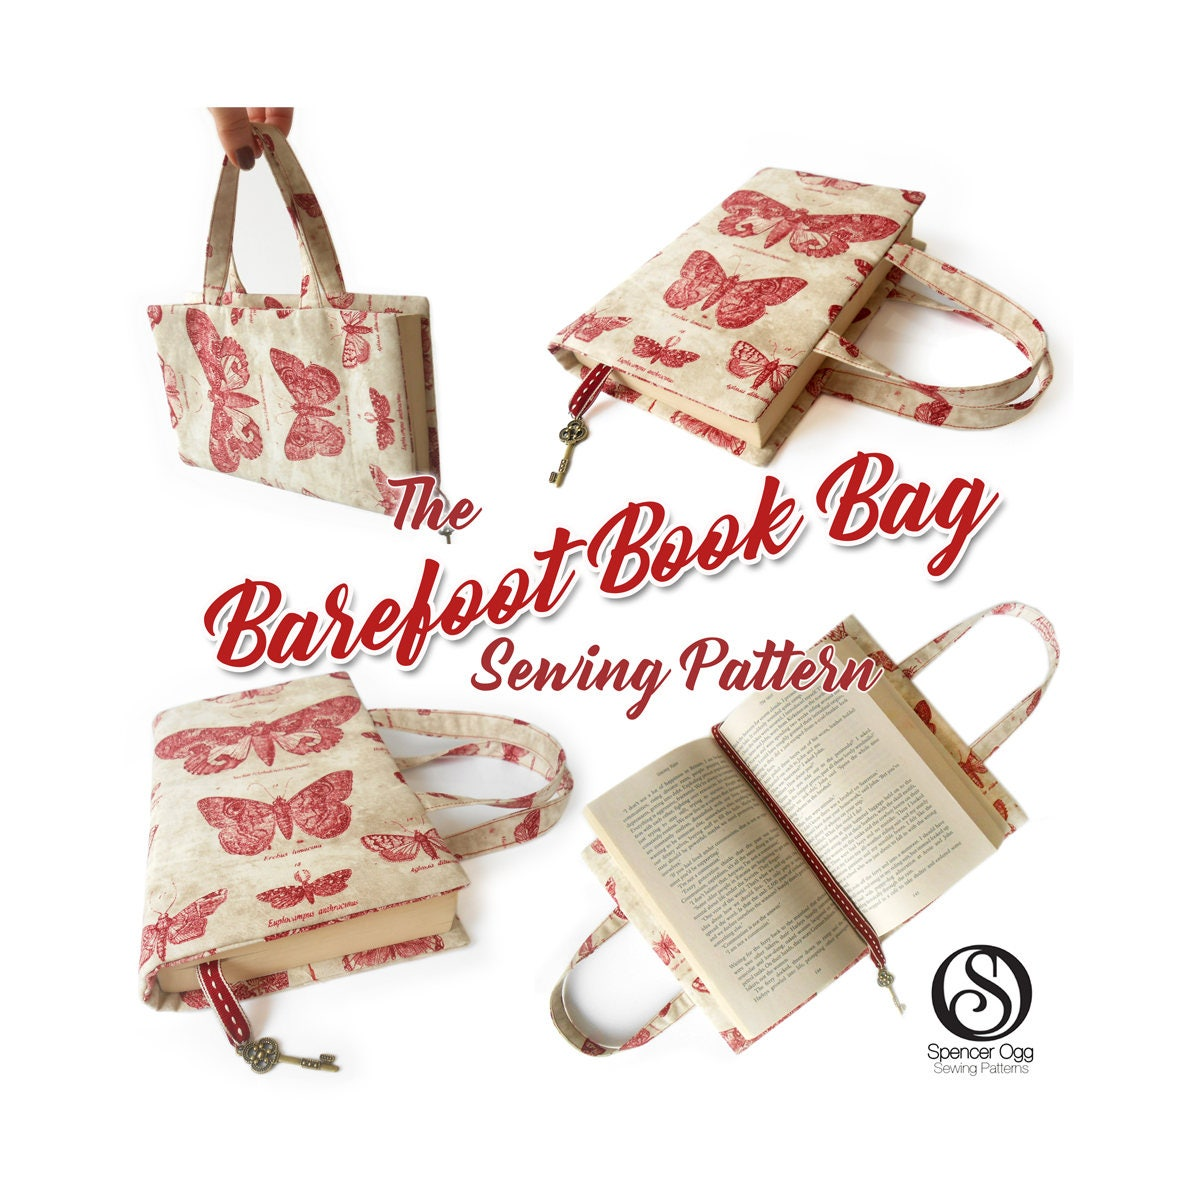 Book Cover Purse Tutorial : Book bag tutorial and pdf pattern cover make for